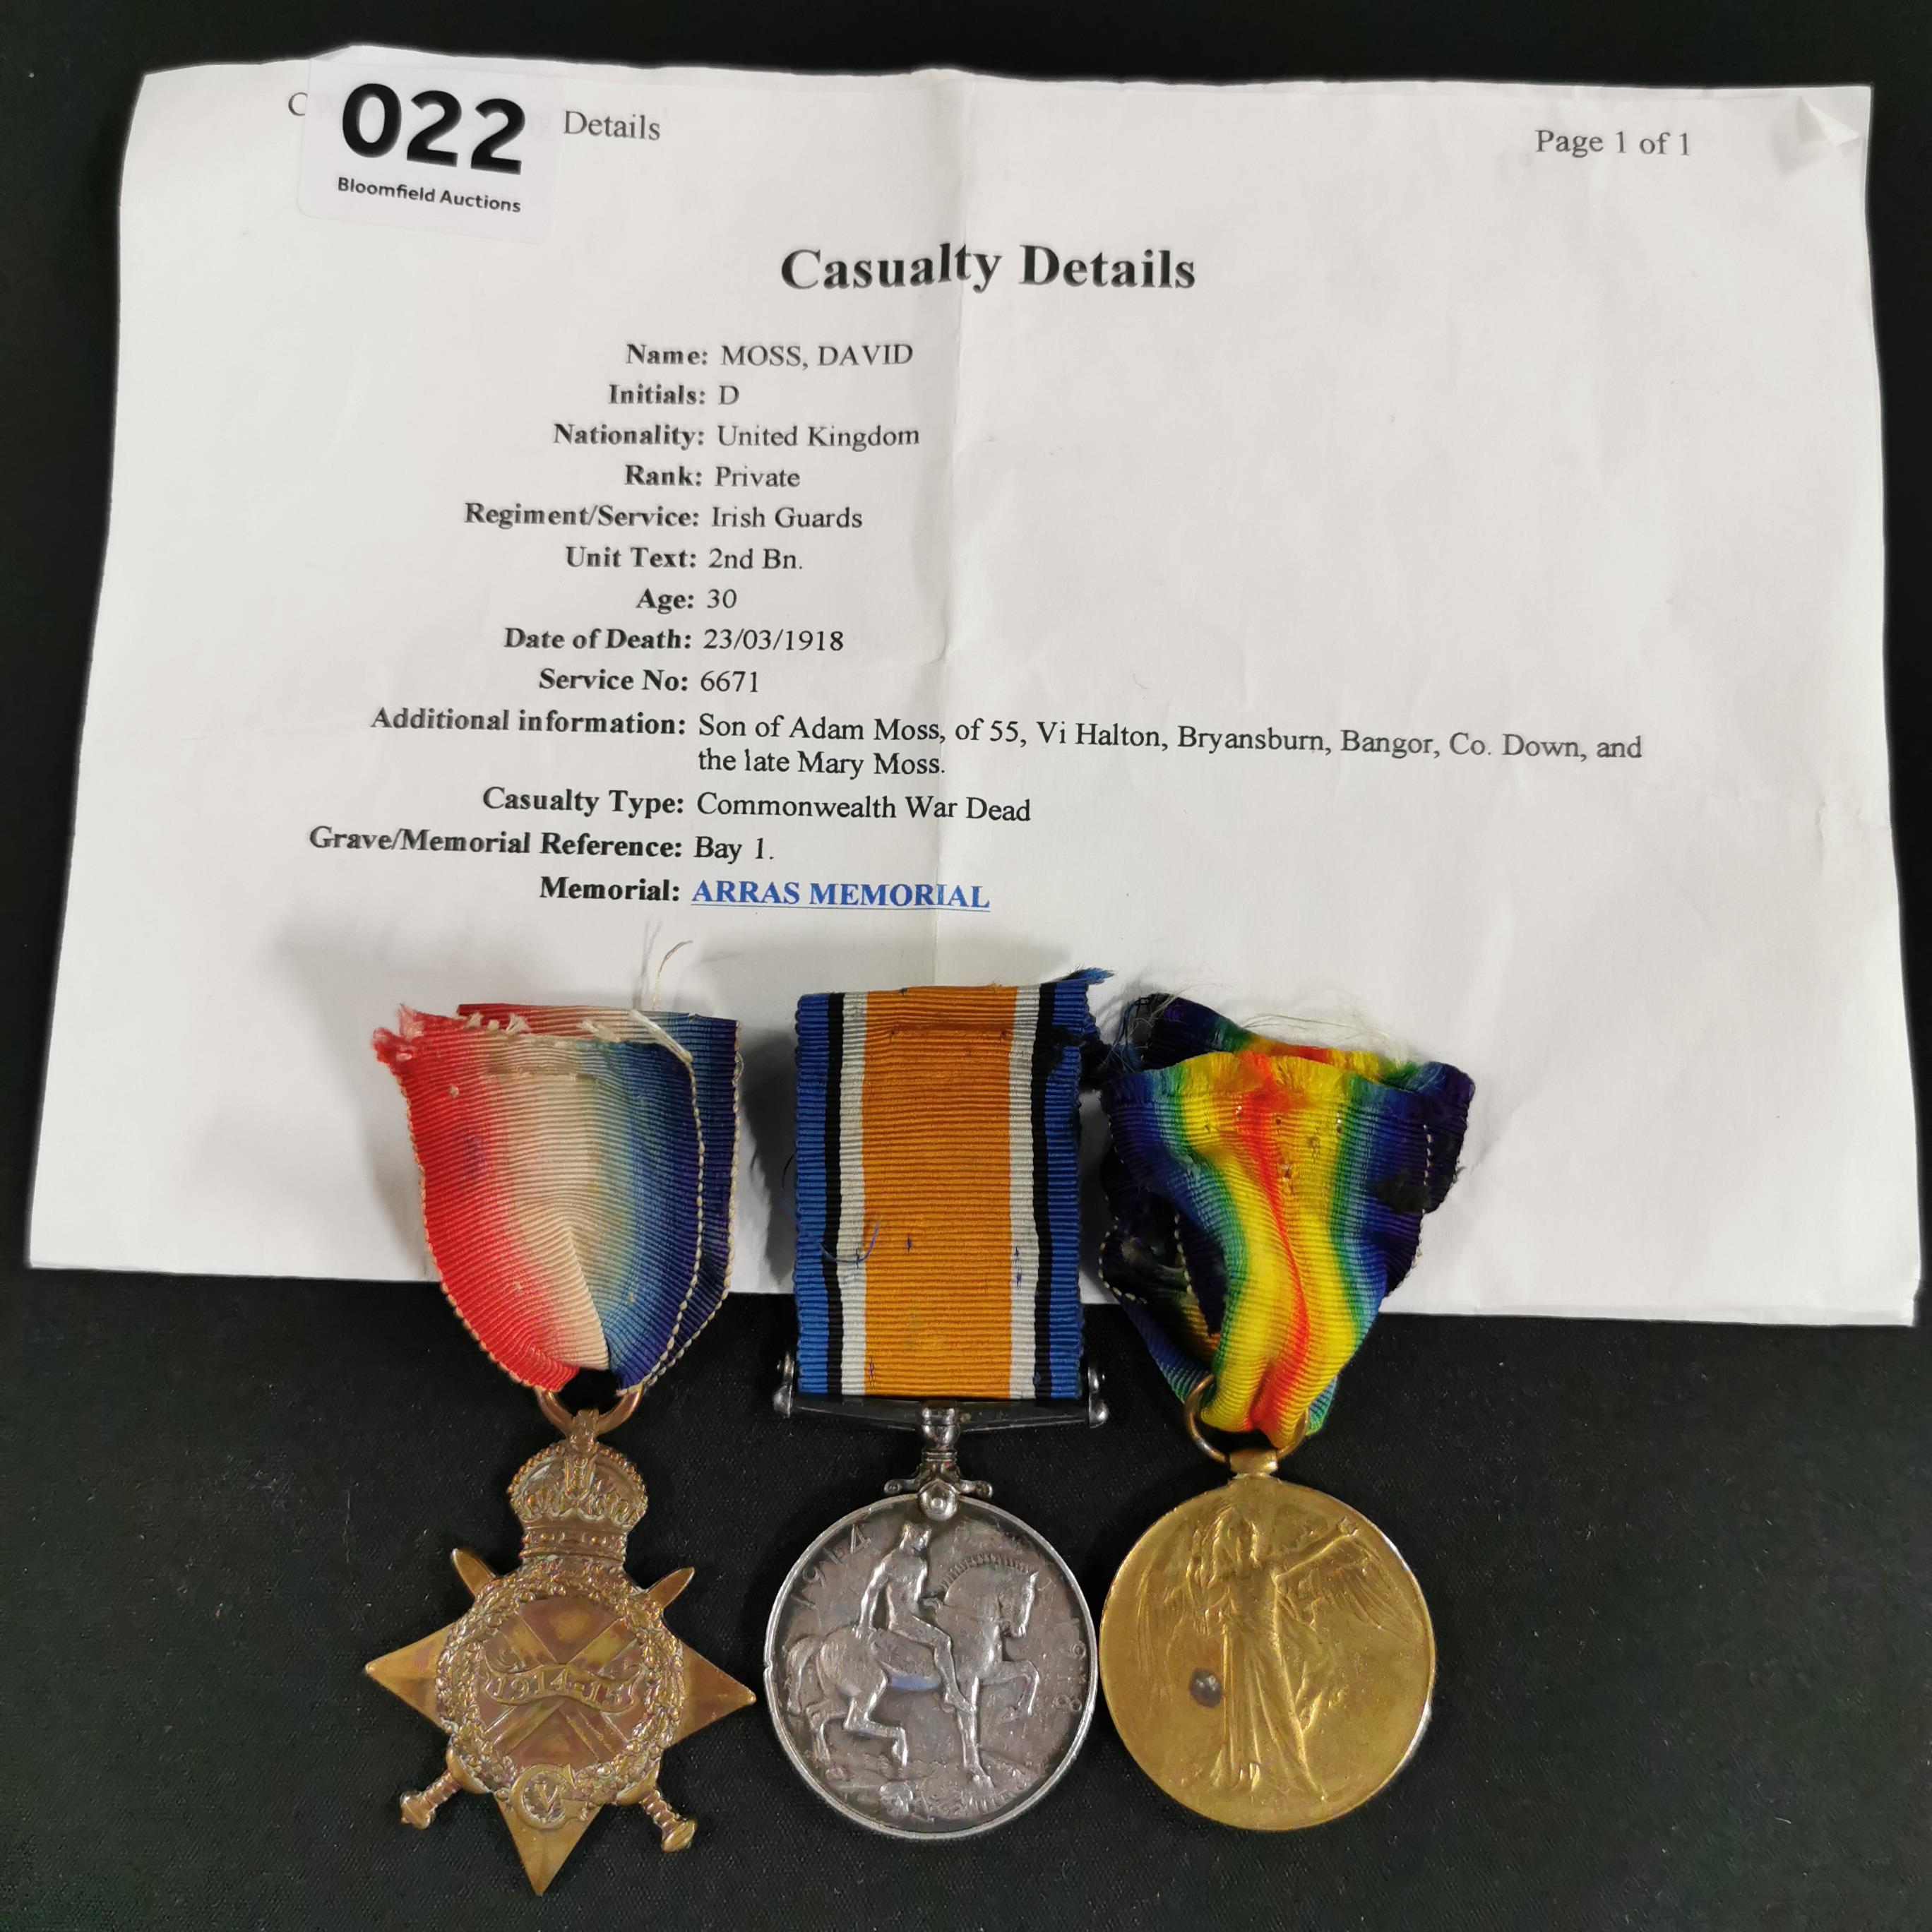 Lot 22 - 1914-15 TRIO TO IRISH GUARDS PRIVATE DAVID MOSS 2ND BTN - DIED 23/03/18 FROM BRYANSBURN BANGOR